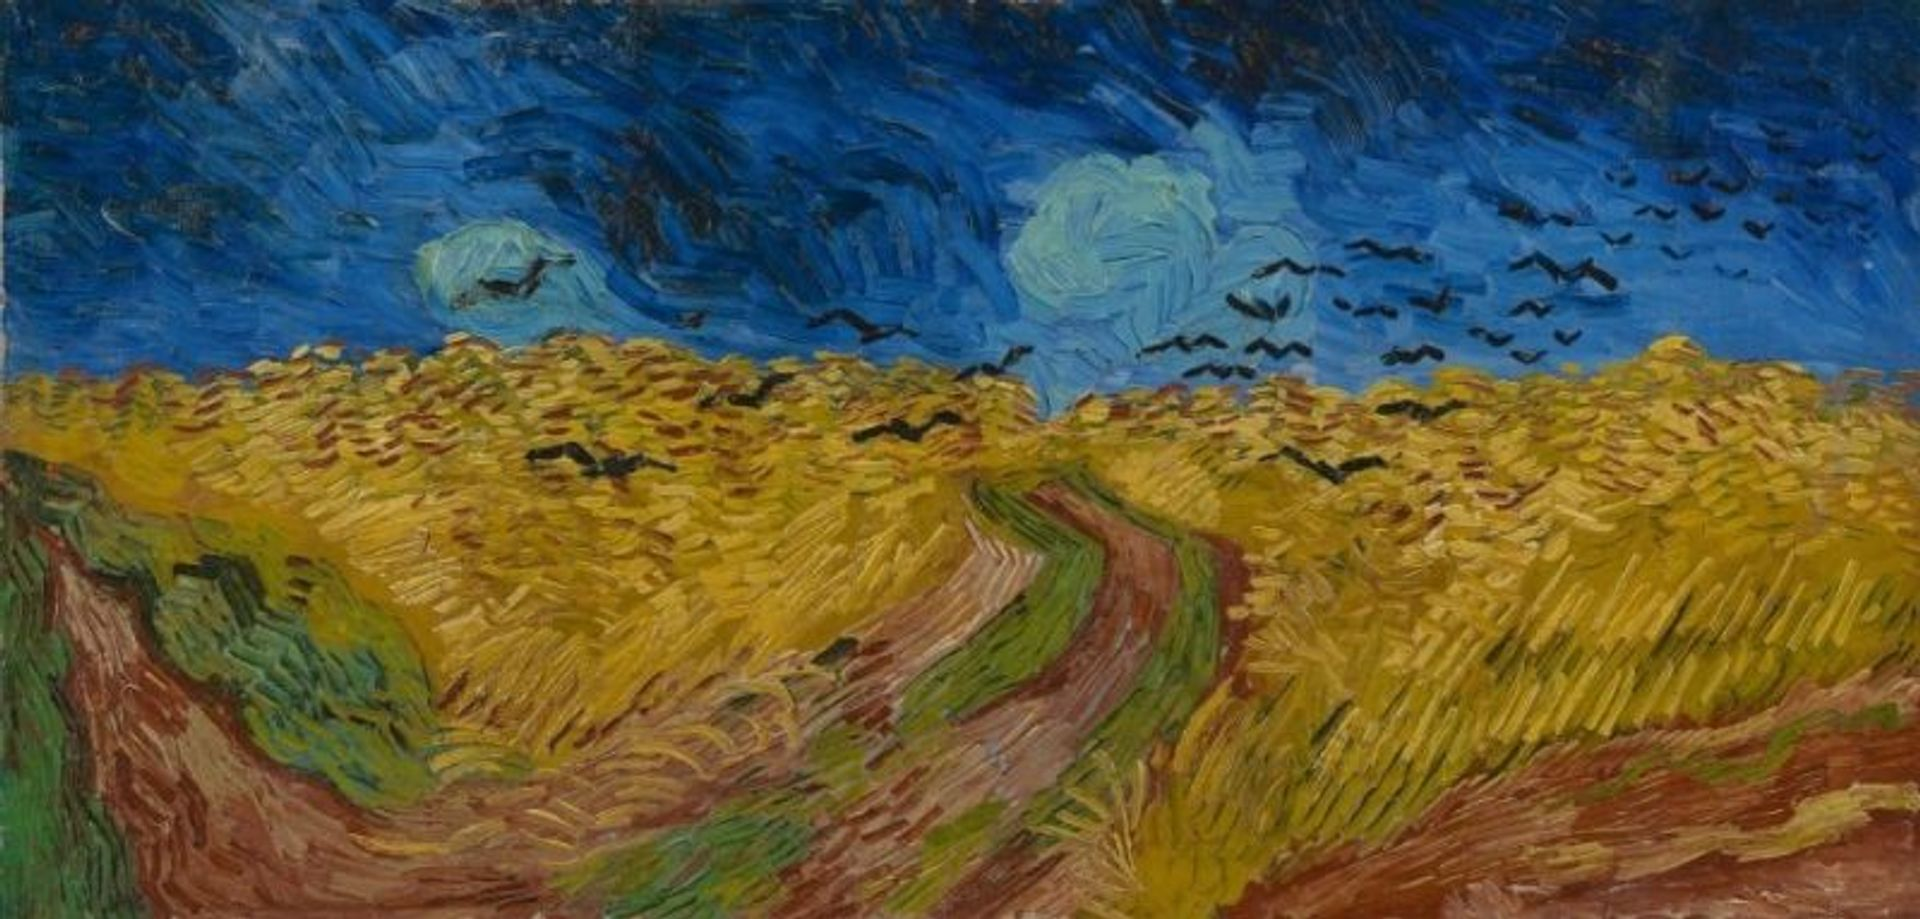 Van Gogh's Wheatfield with Crows (July 1890) Courtesy of the Van Gogh Museum, Amsterdam (Vincent van Gogh Foundation)